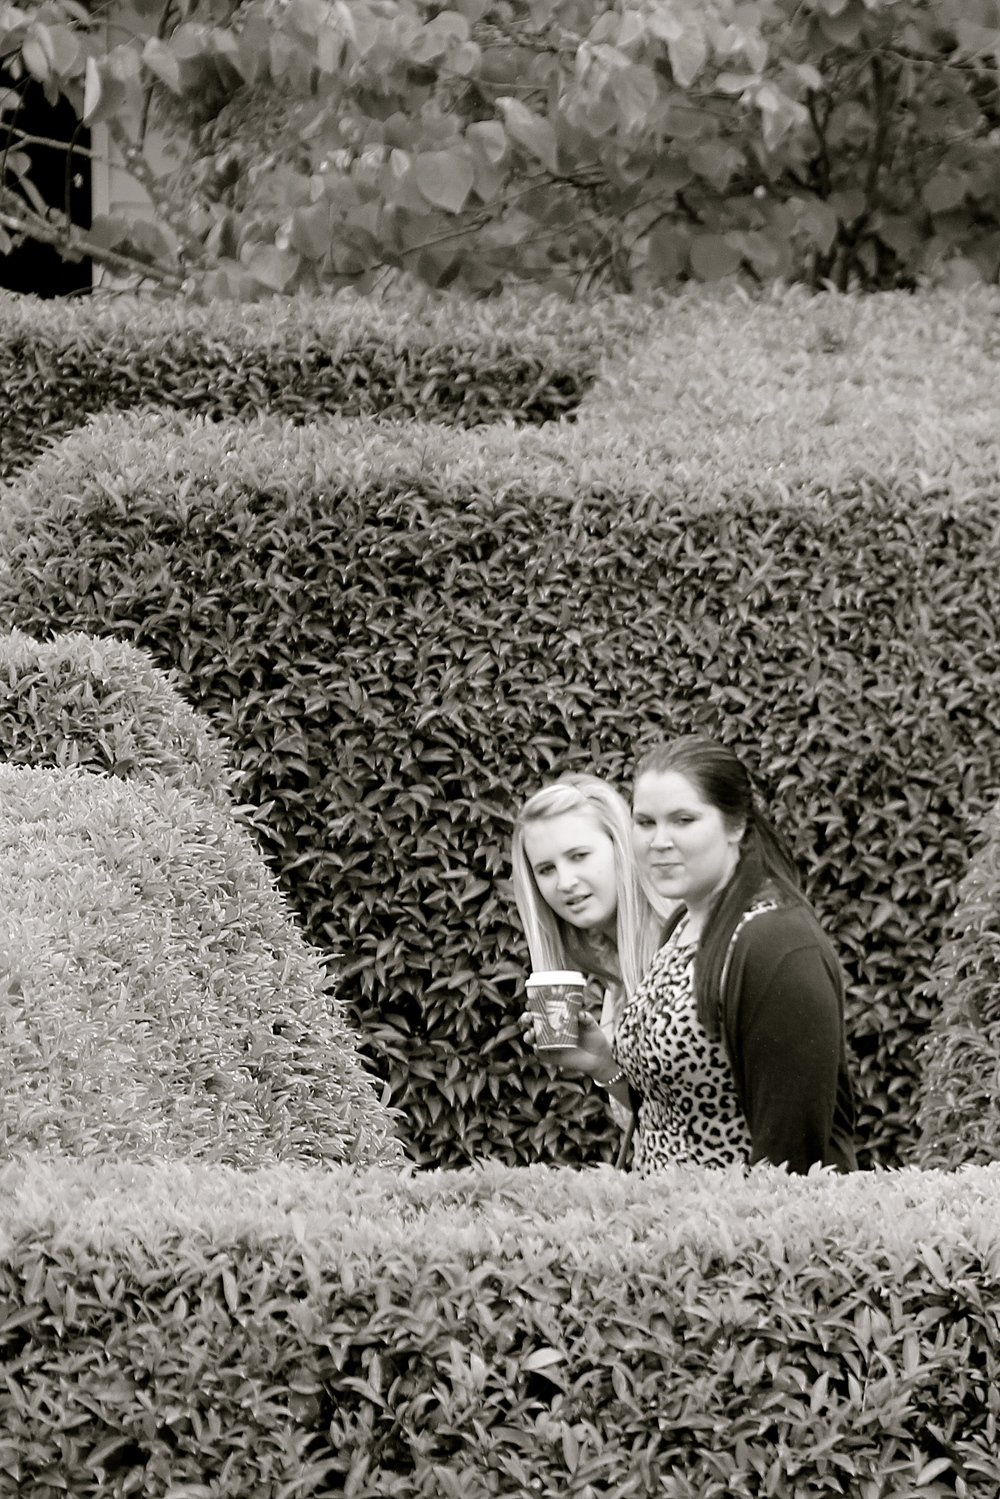 Pairs & Caitlin tackle the Maze.